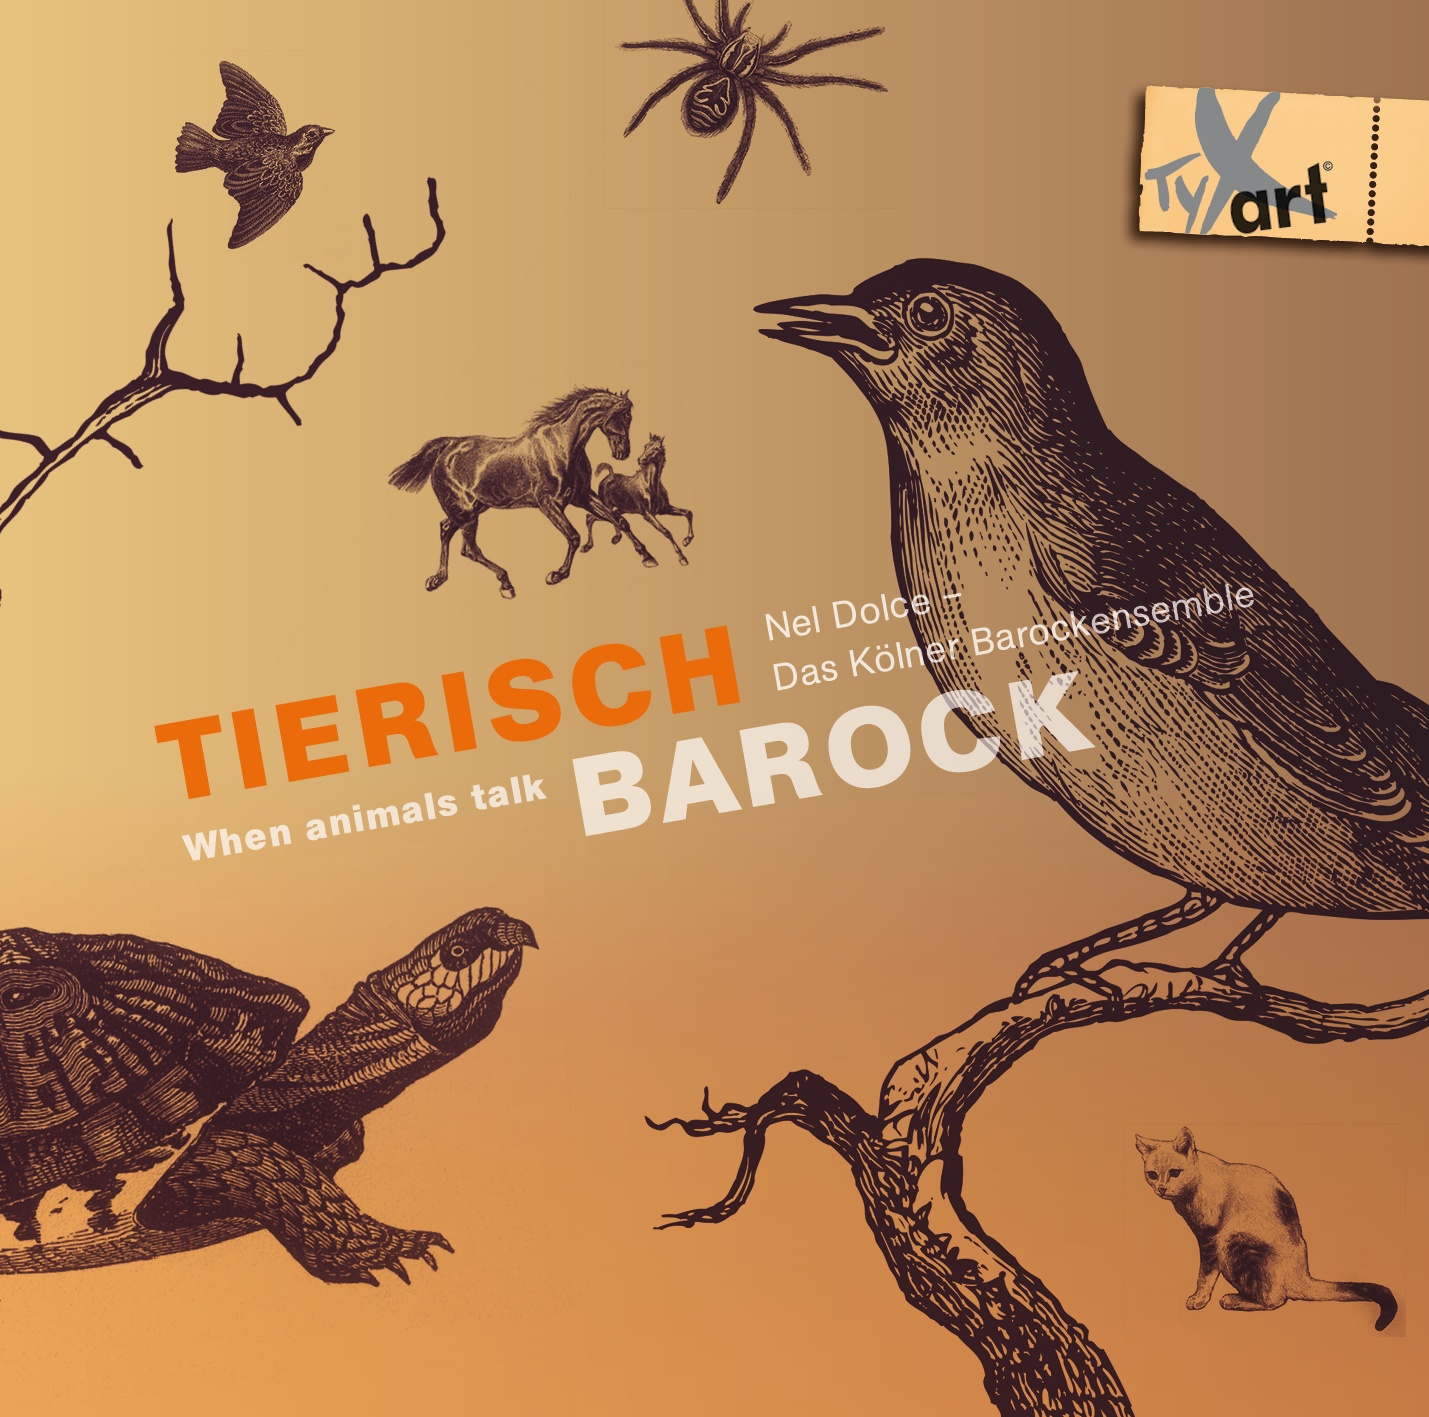 Tierisch Barock - When animals talk - Nel Dolce